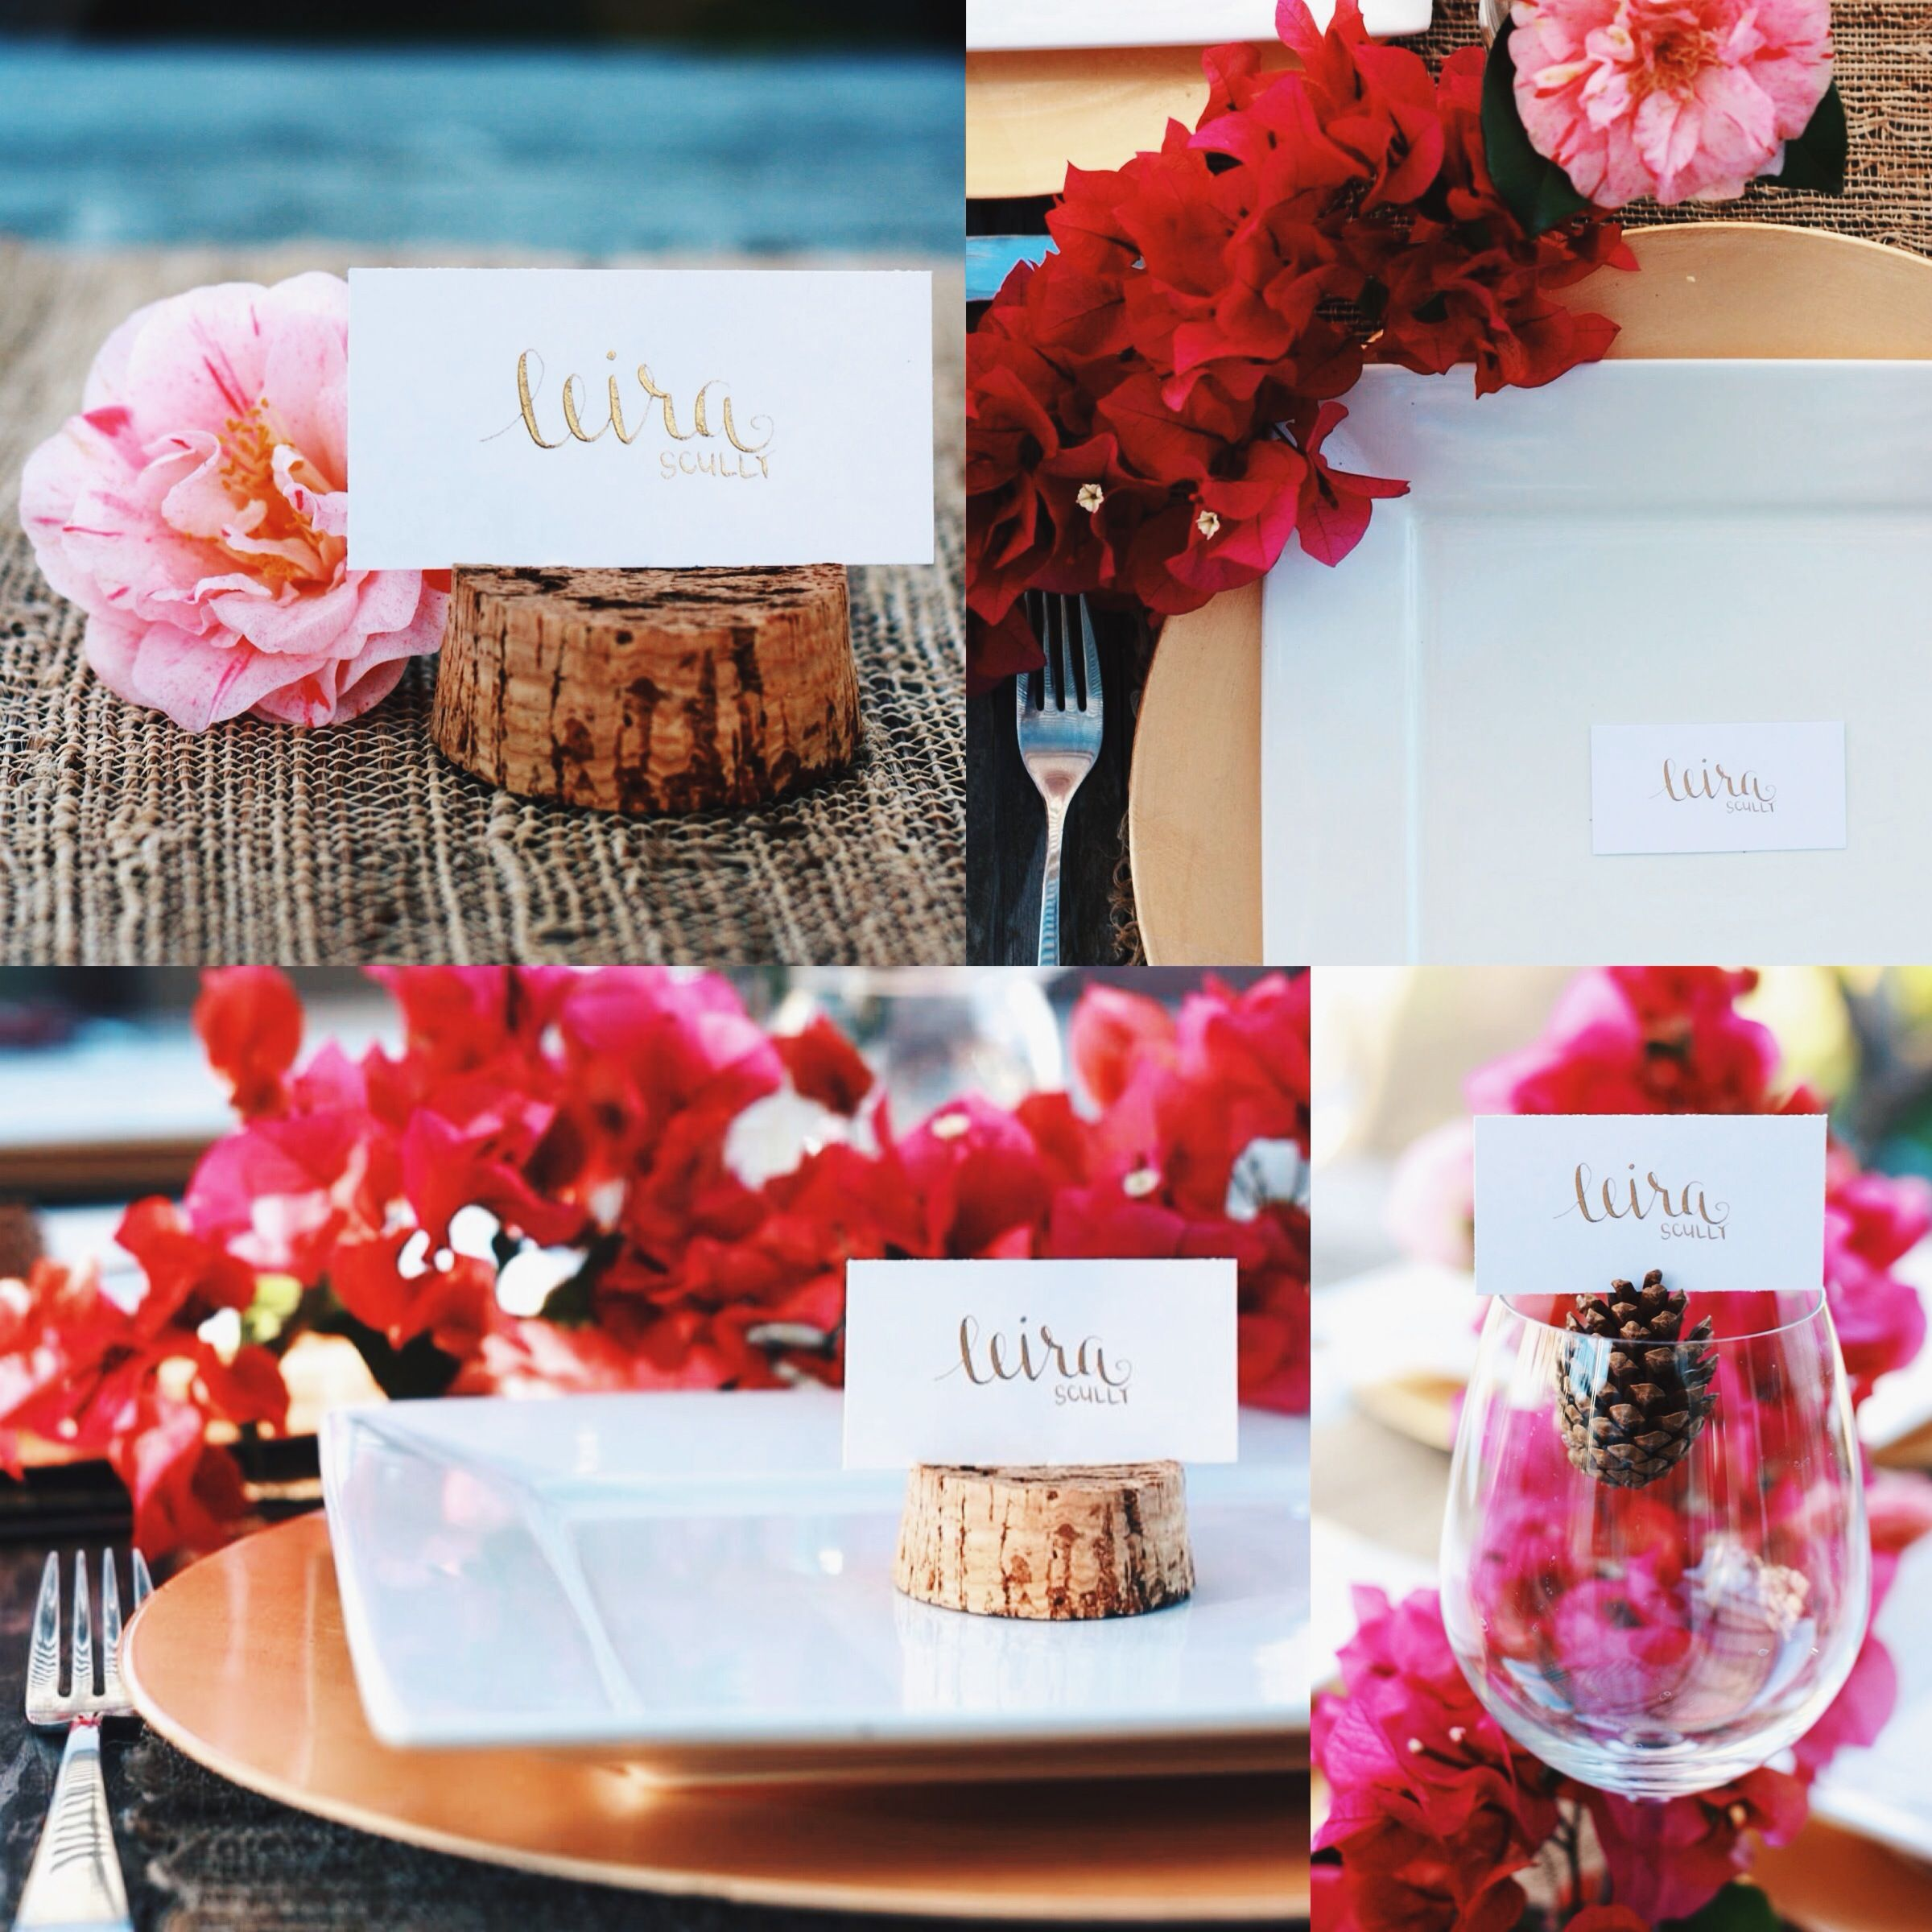 Dinner Party Name Ideas Part - 20: Wedding Place Cards - Escort Card - Gold / Black Calligraphy - Dinner Party  - Name